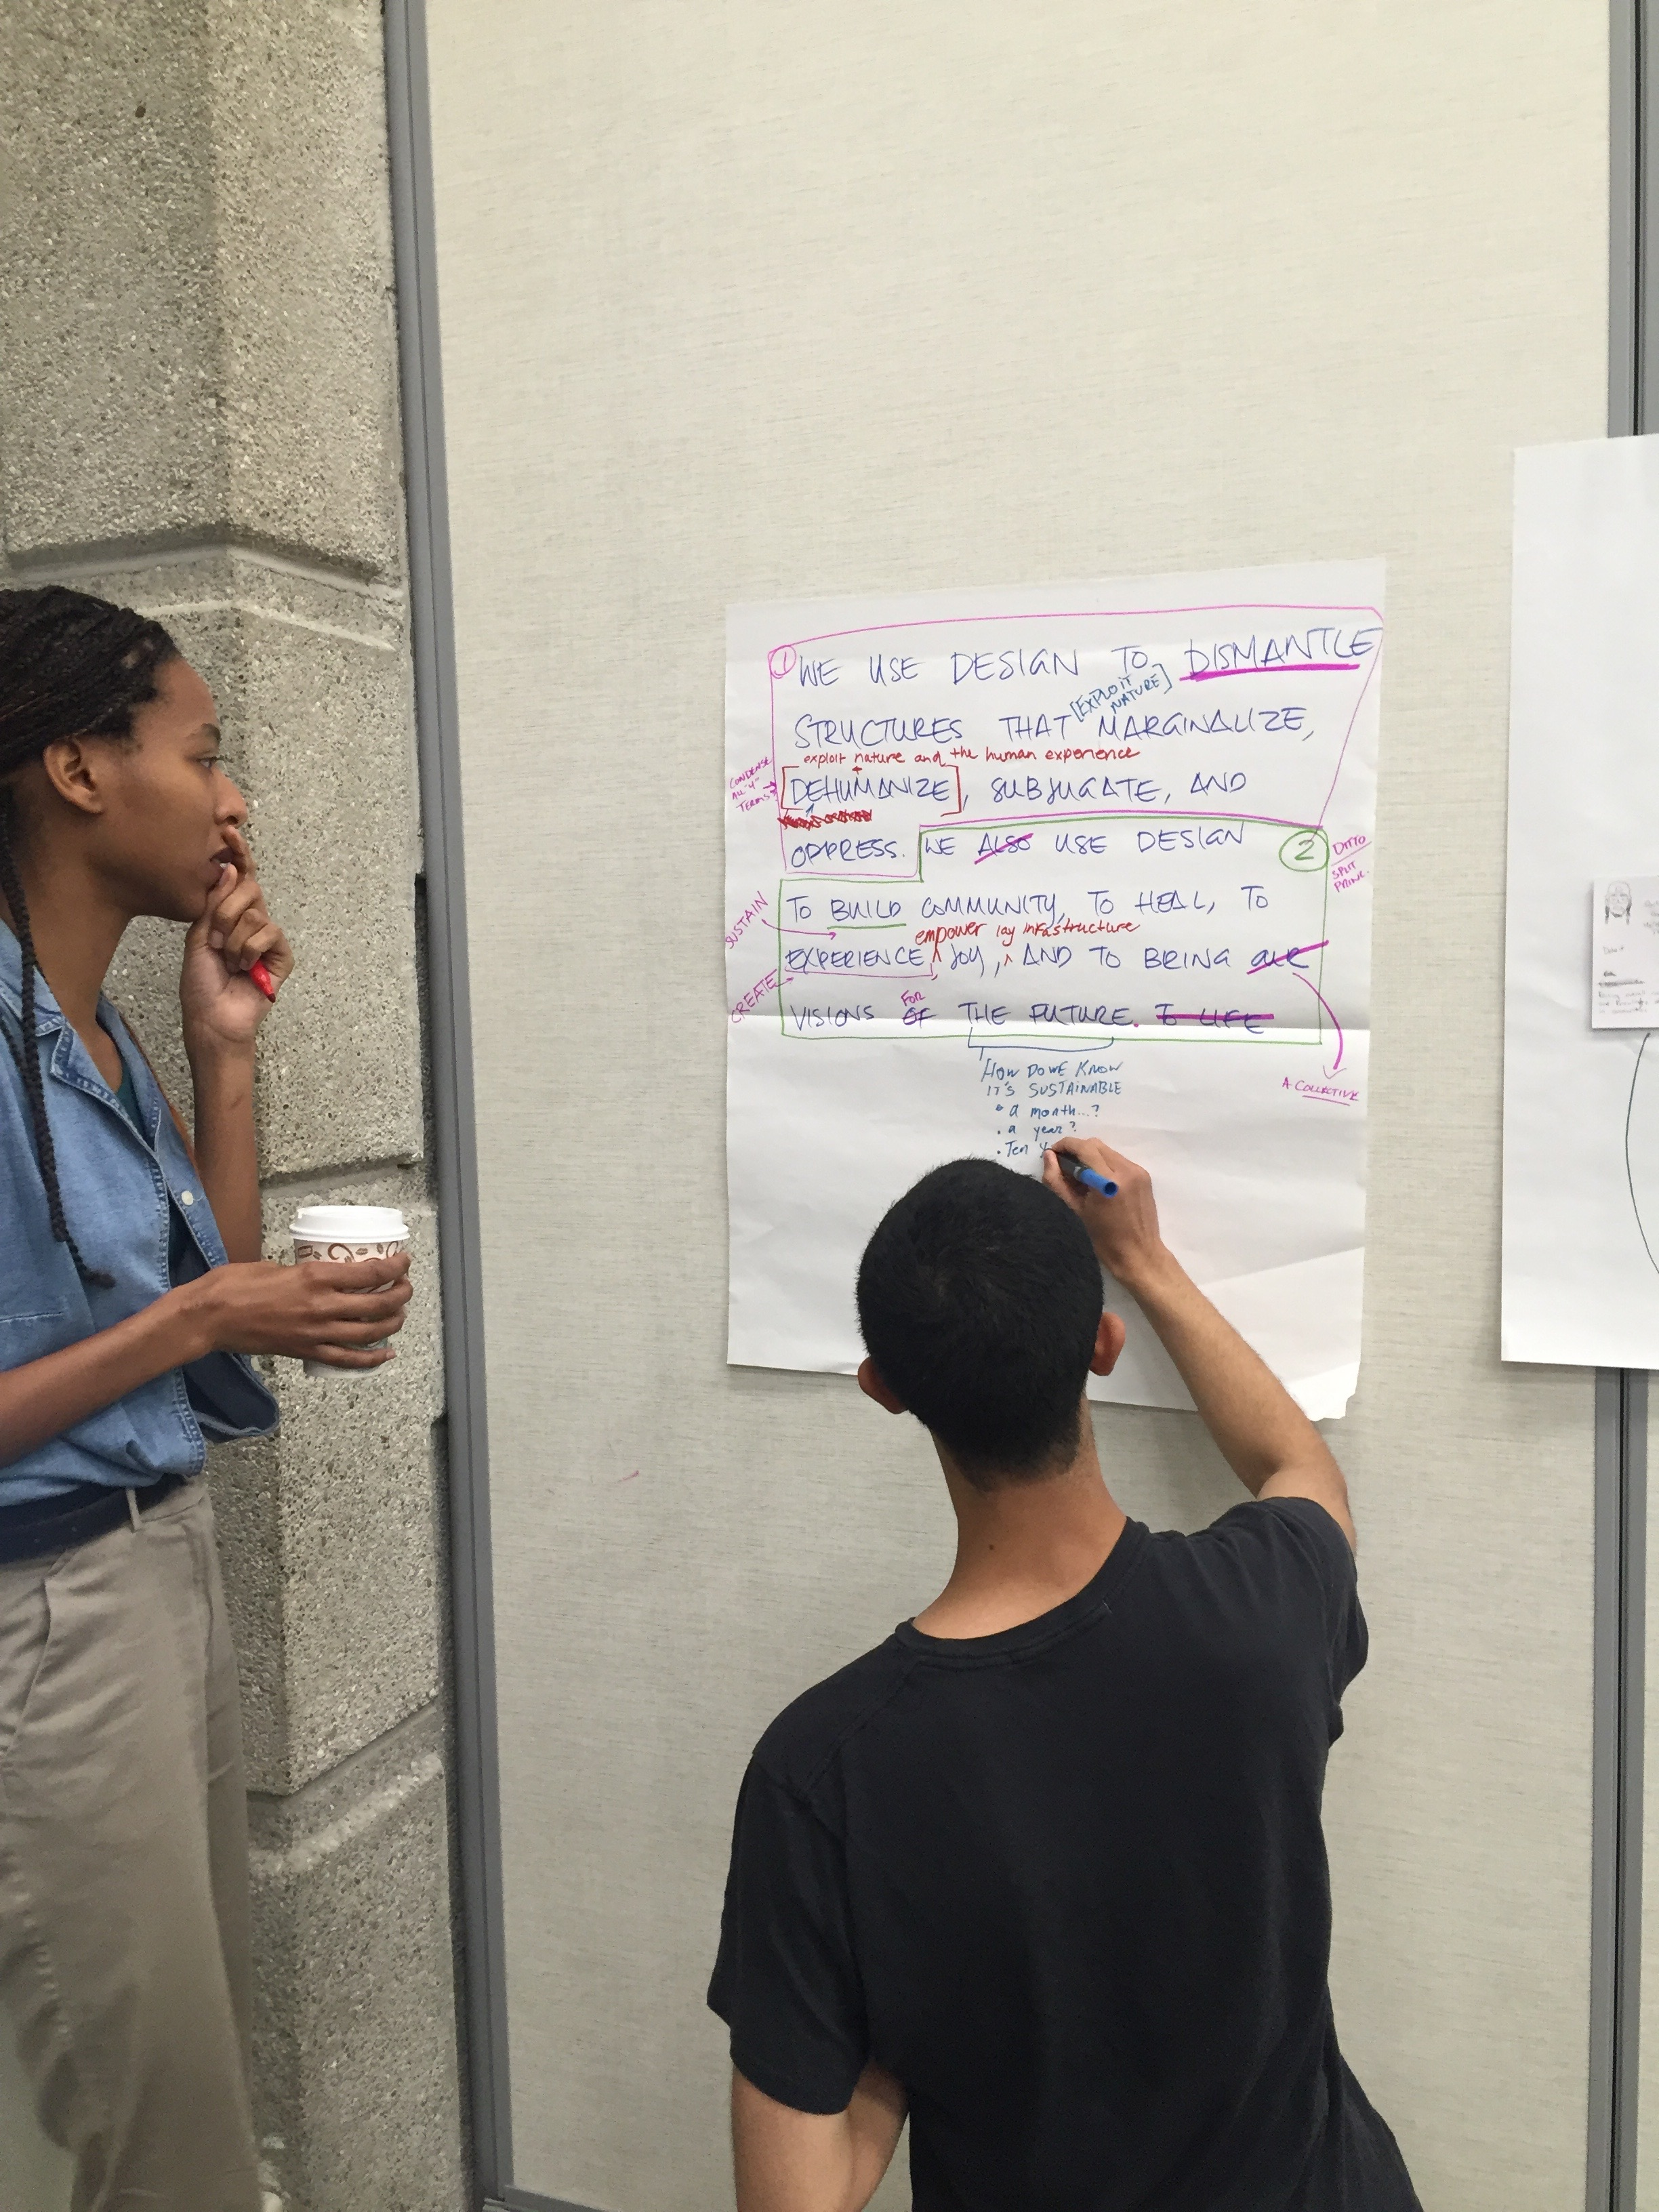 Collaboratively editing the network principles